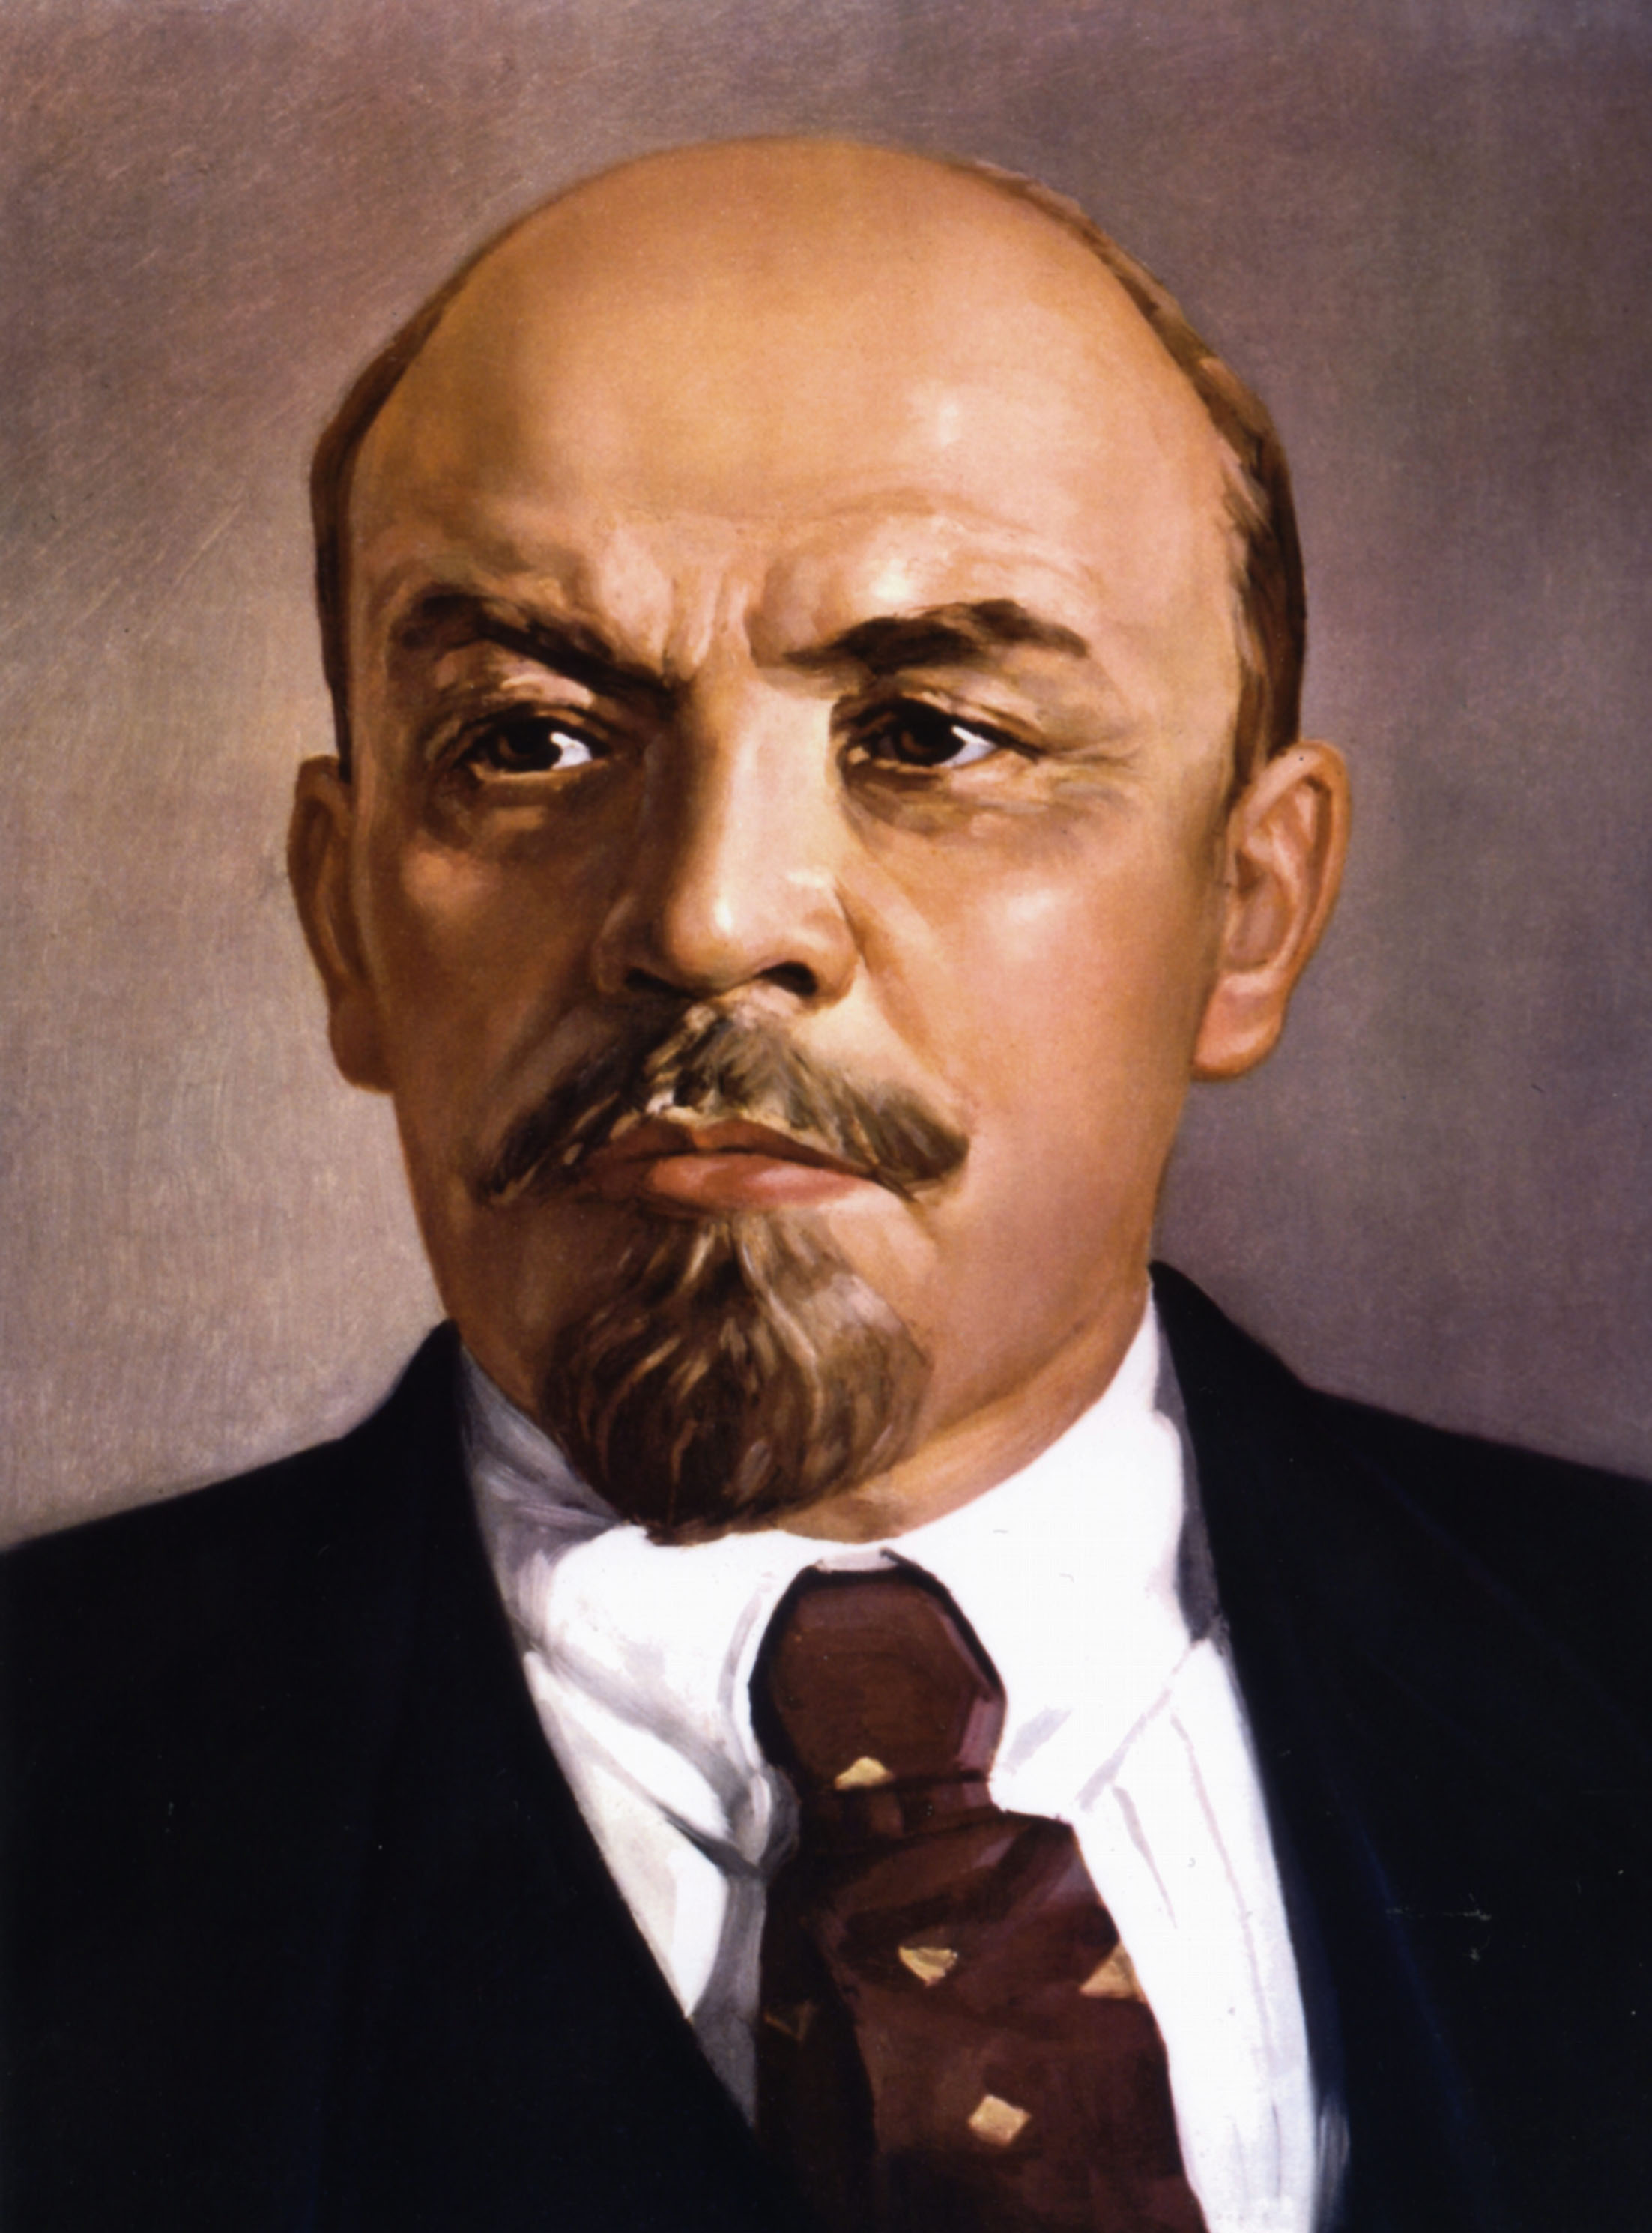 was lenin an important communist